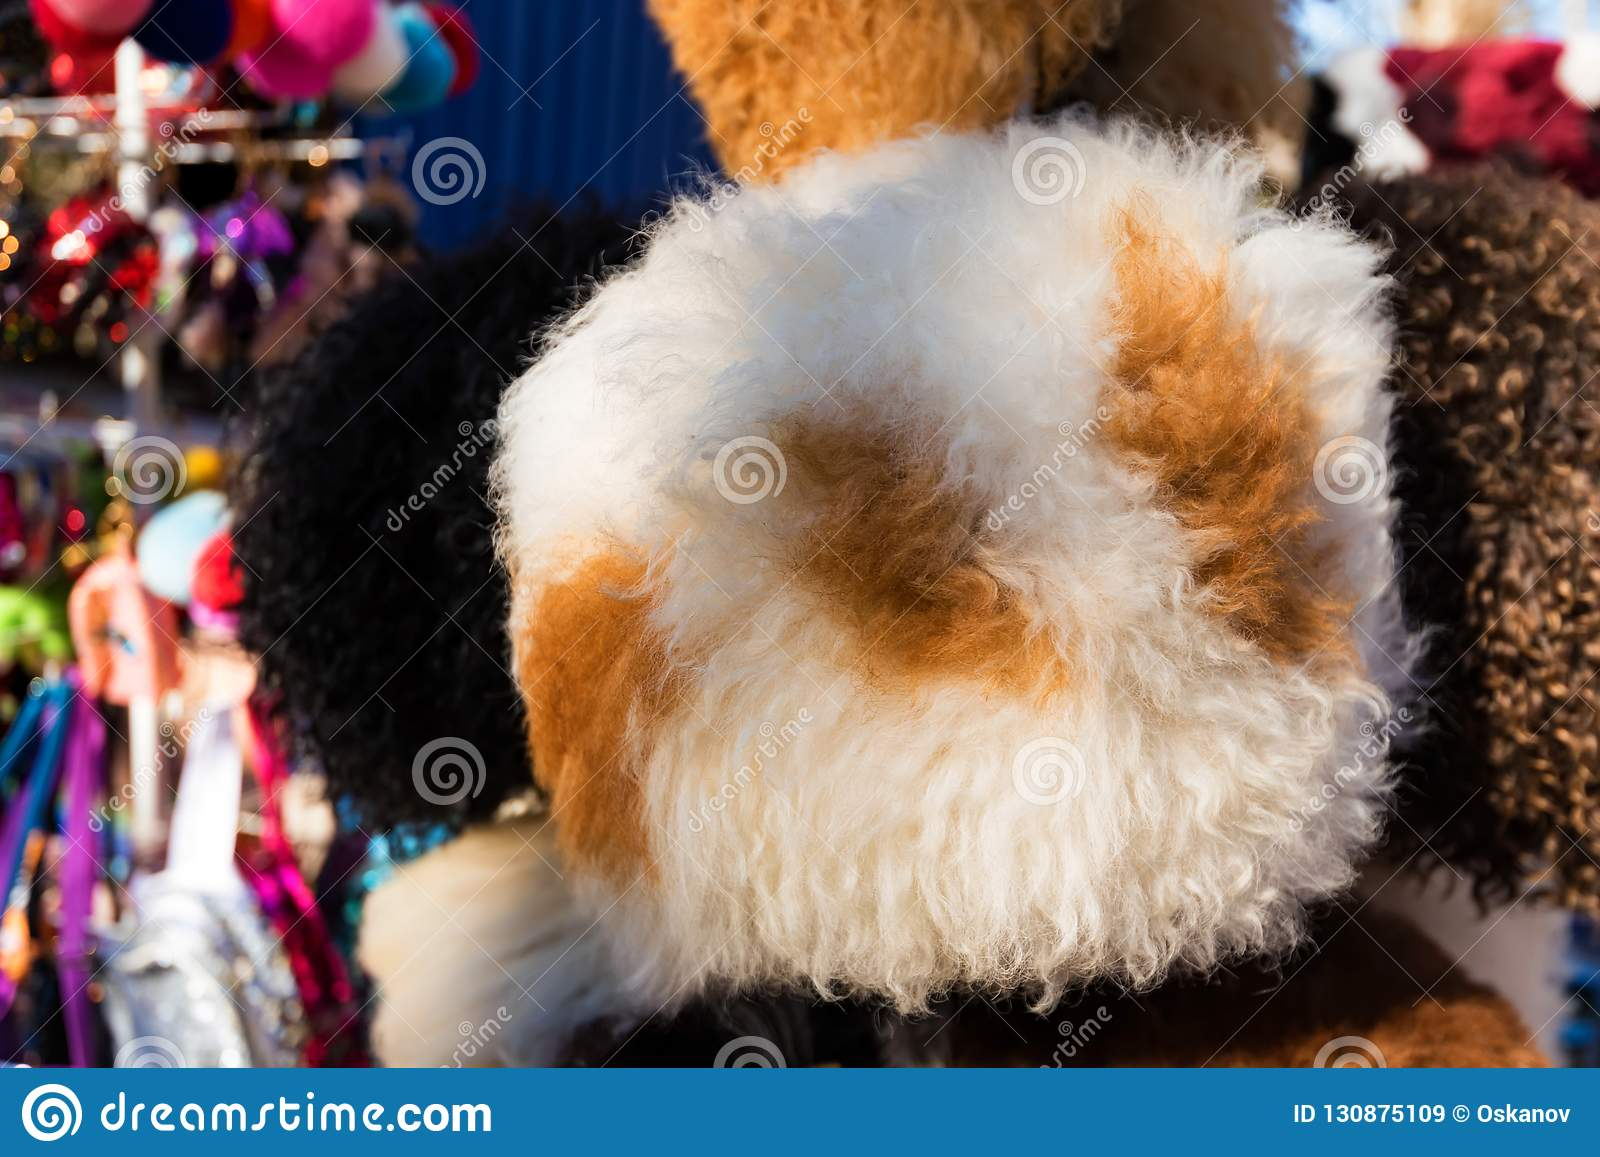 45ff9e3762f Warm Fur Hats For Sale In Outdoors Market Stock Image - Image of ...